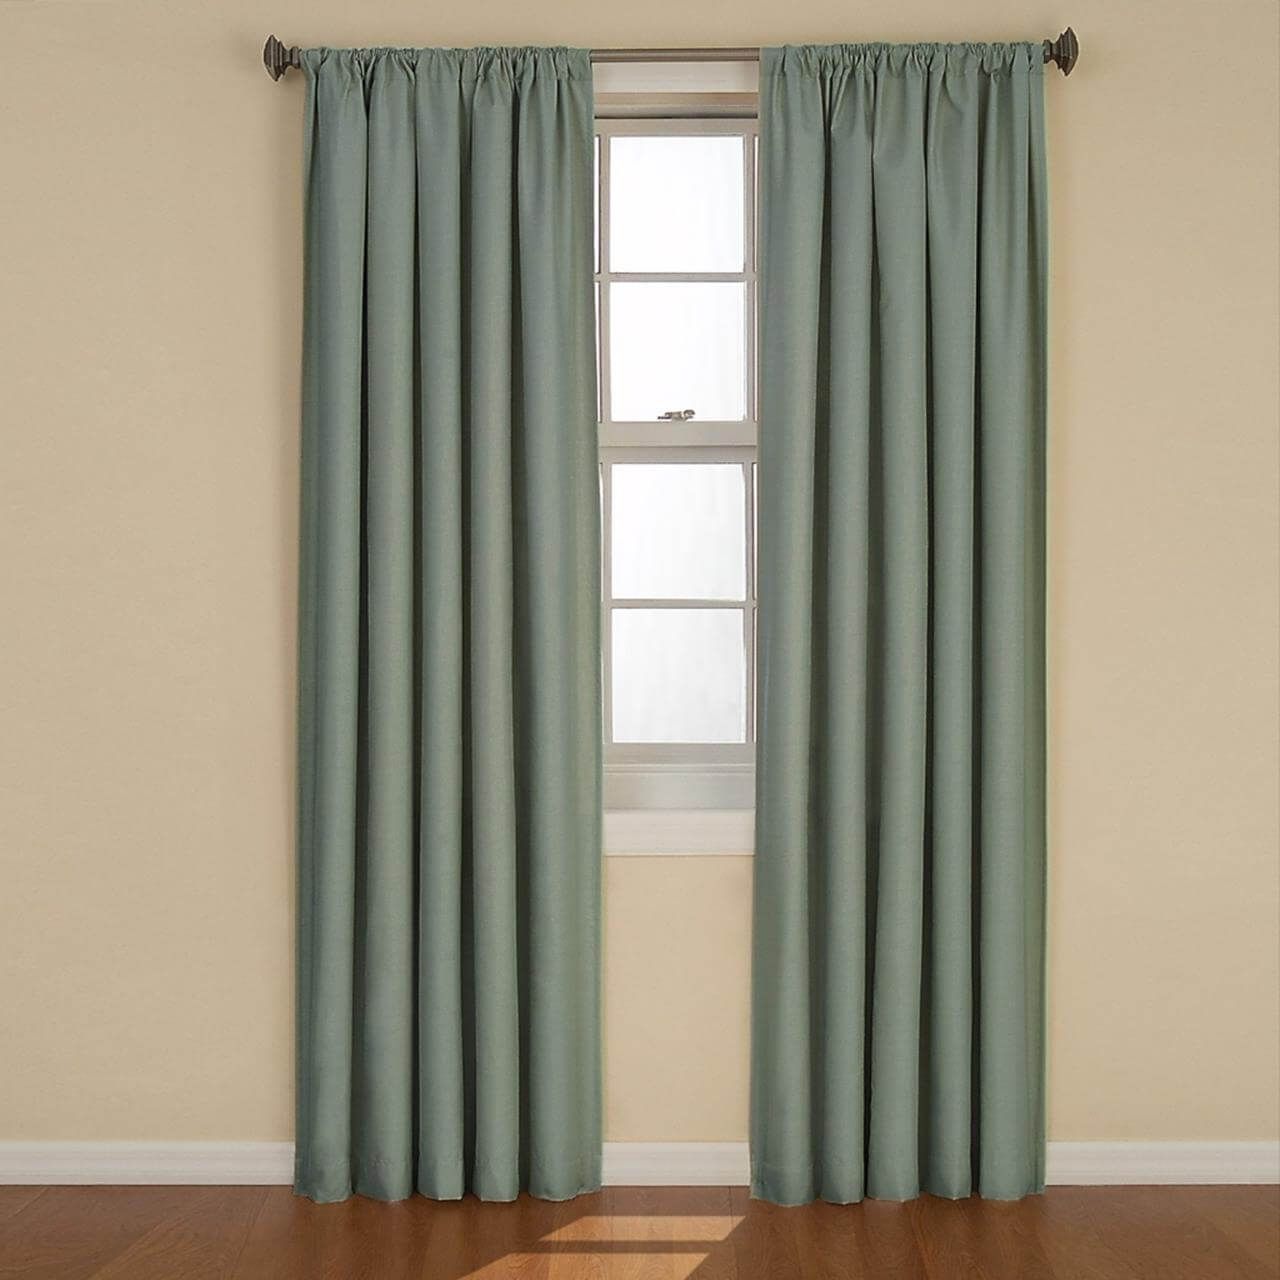 Bed bath and beyond window shades   best window design with cool curtains at jcpenney  best window